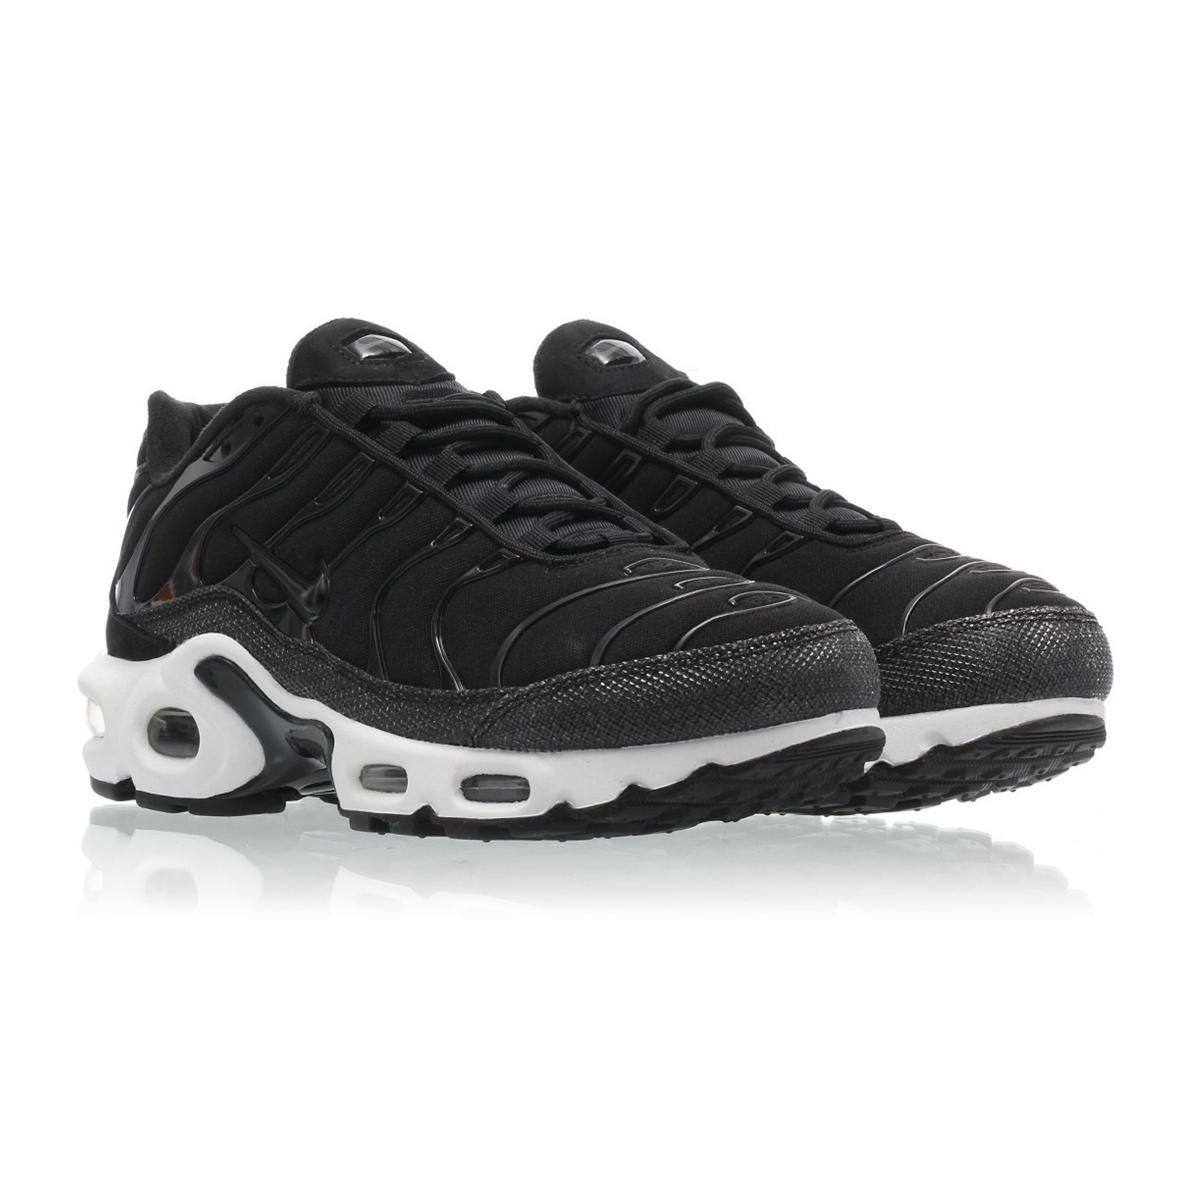 Scarpe Nike Air Max Plus Premium TN - Donna 848891-001 www.montorostore.it